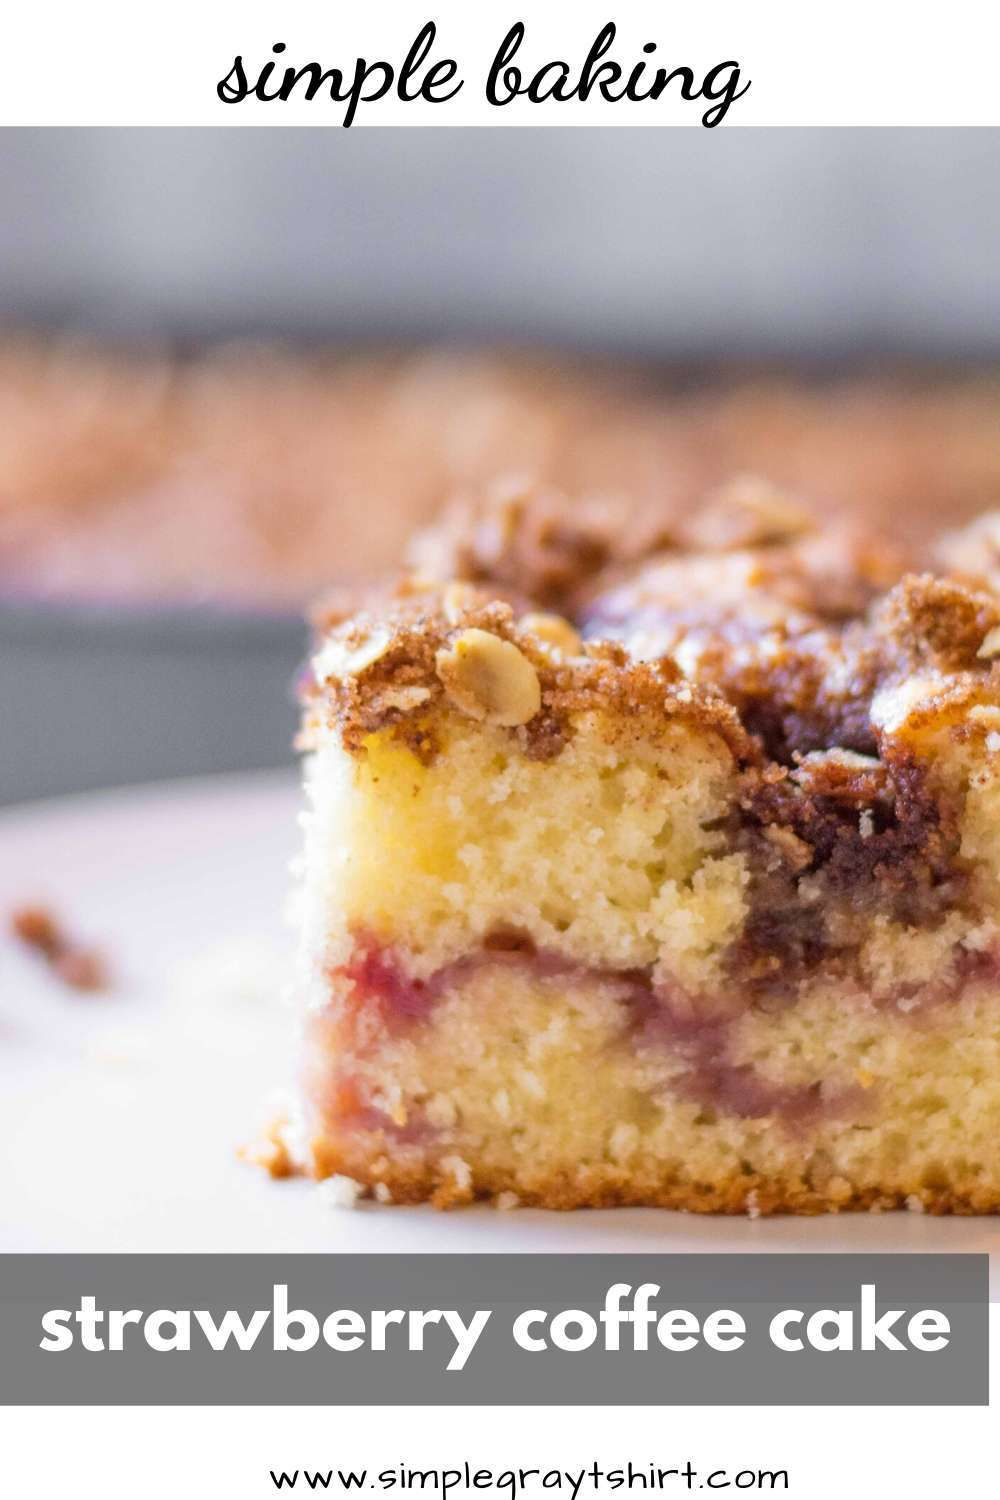 Coffee Cake With Strawberry Jam Simple Gray T Shirt Recipe Coffee Cake Recipes Coffee Cake Recipes Easy Strawberry Cakes